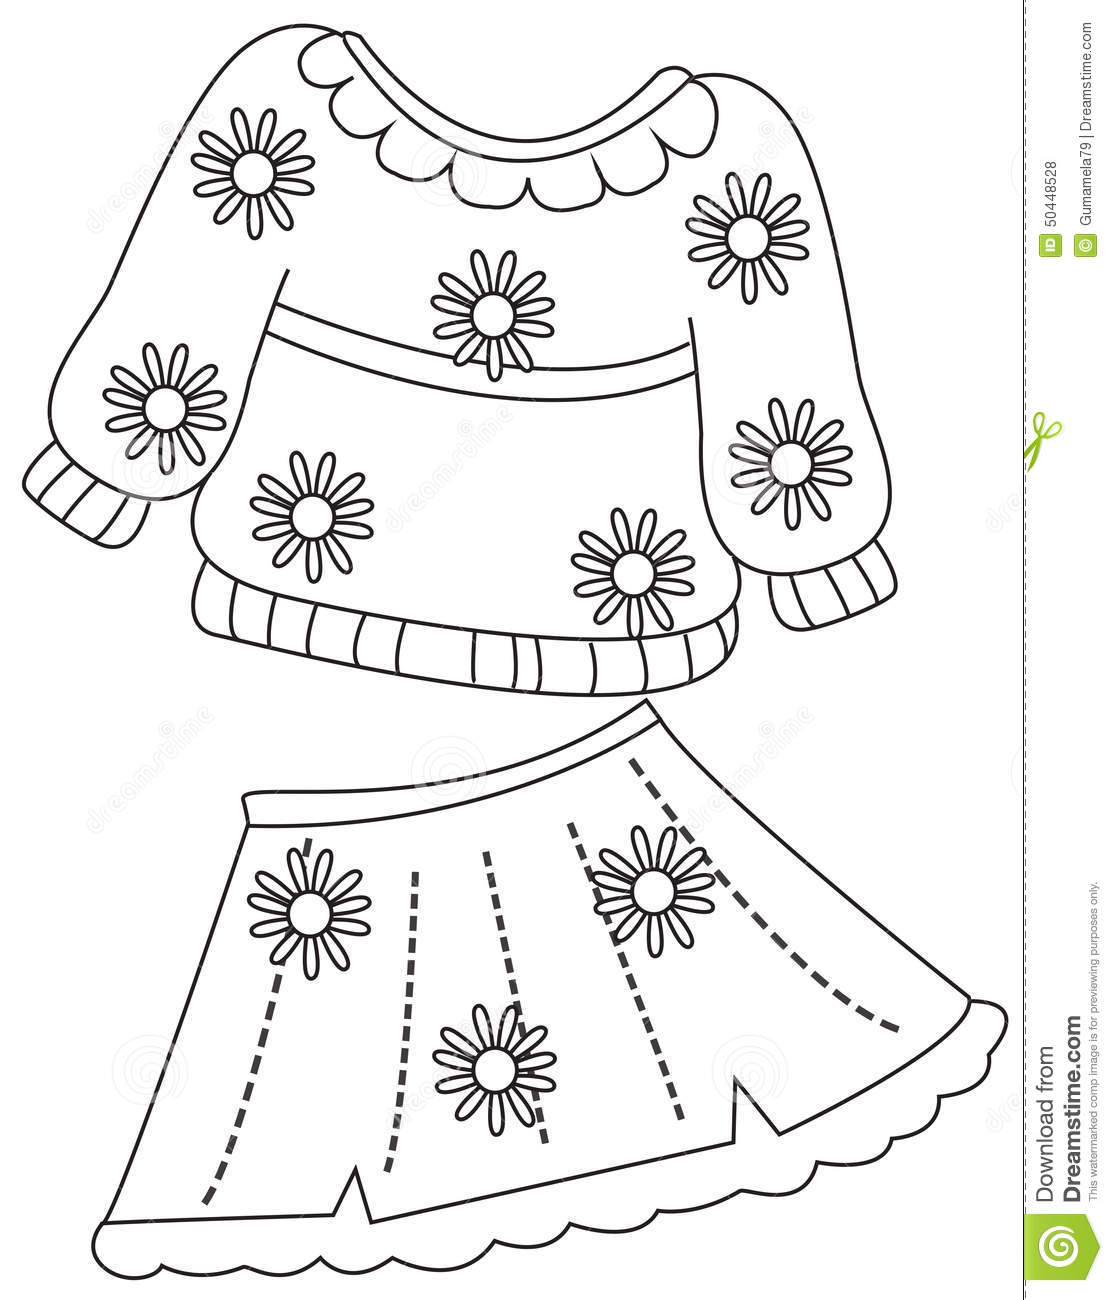 Print Clothes Coloring Page Stock Illustration Illustration Of